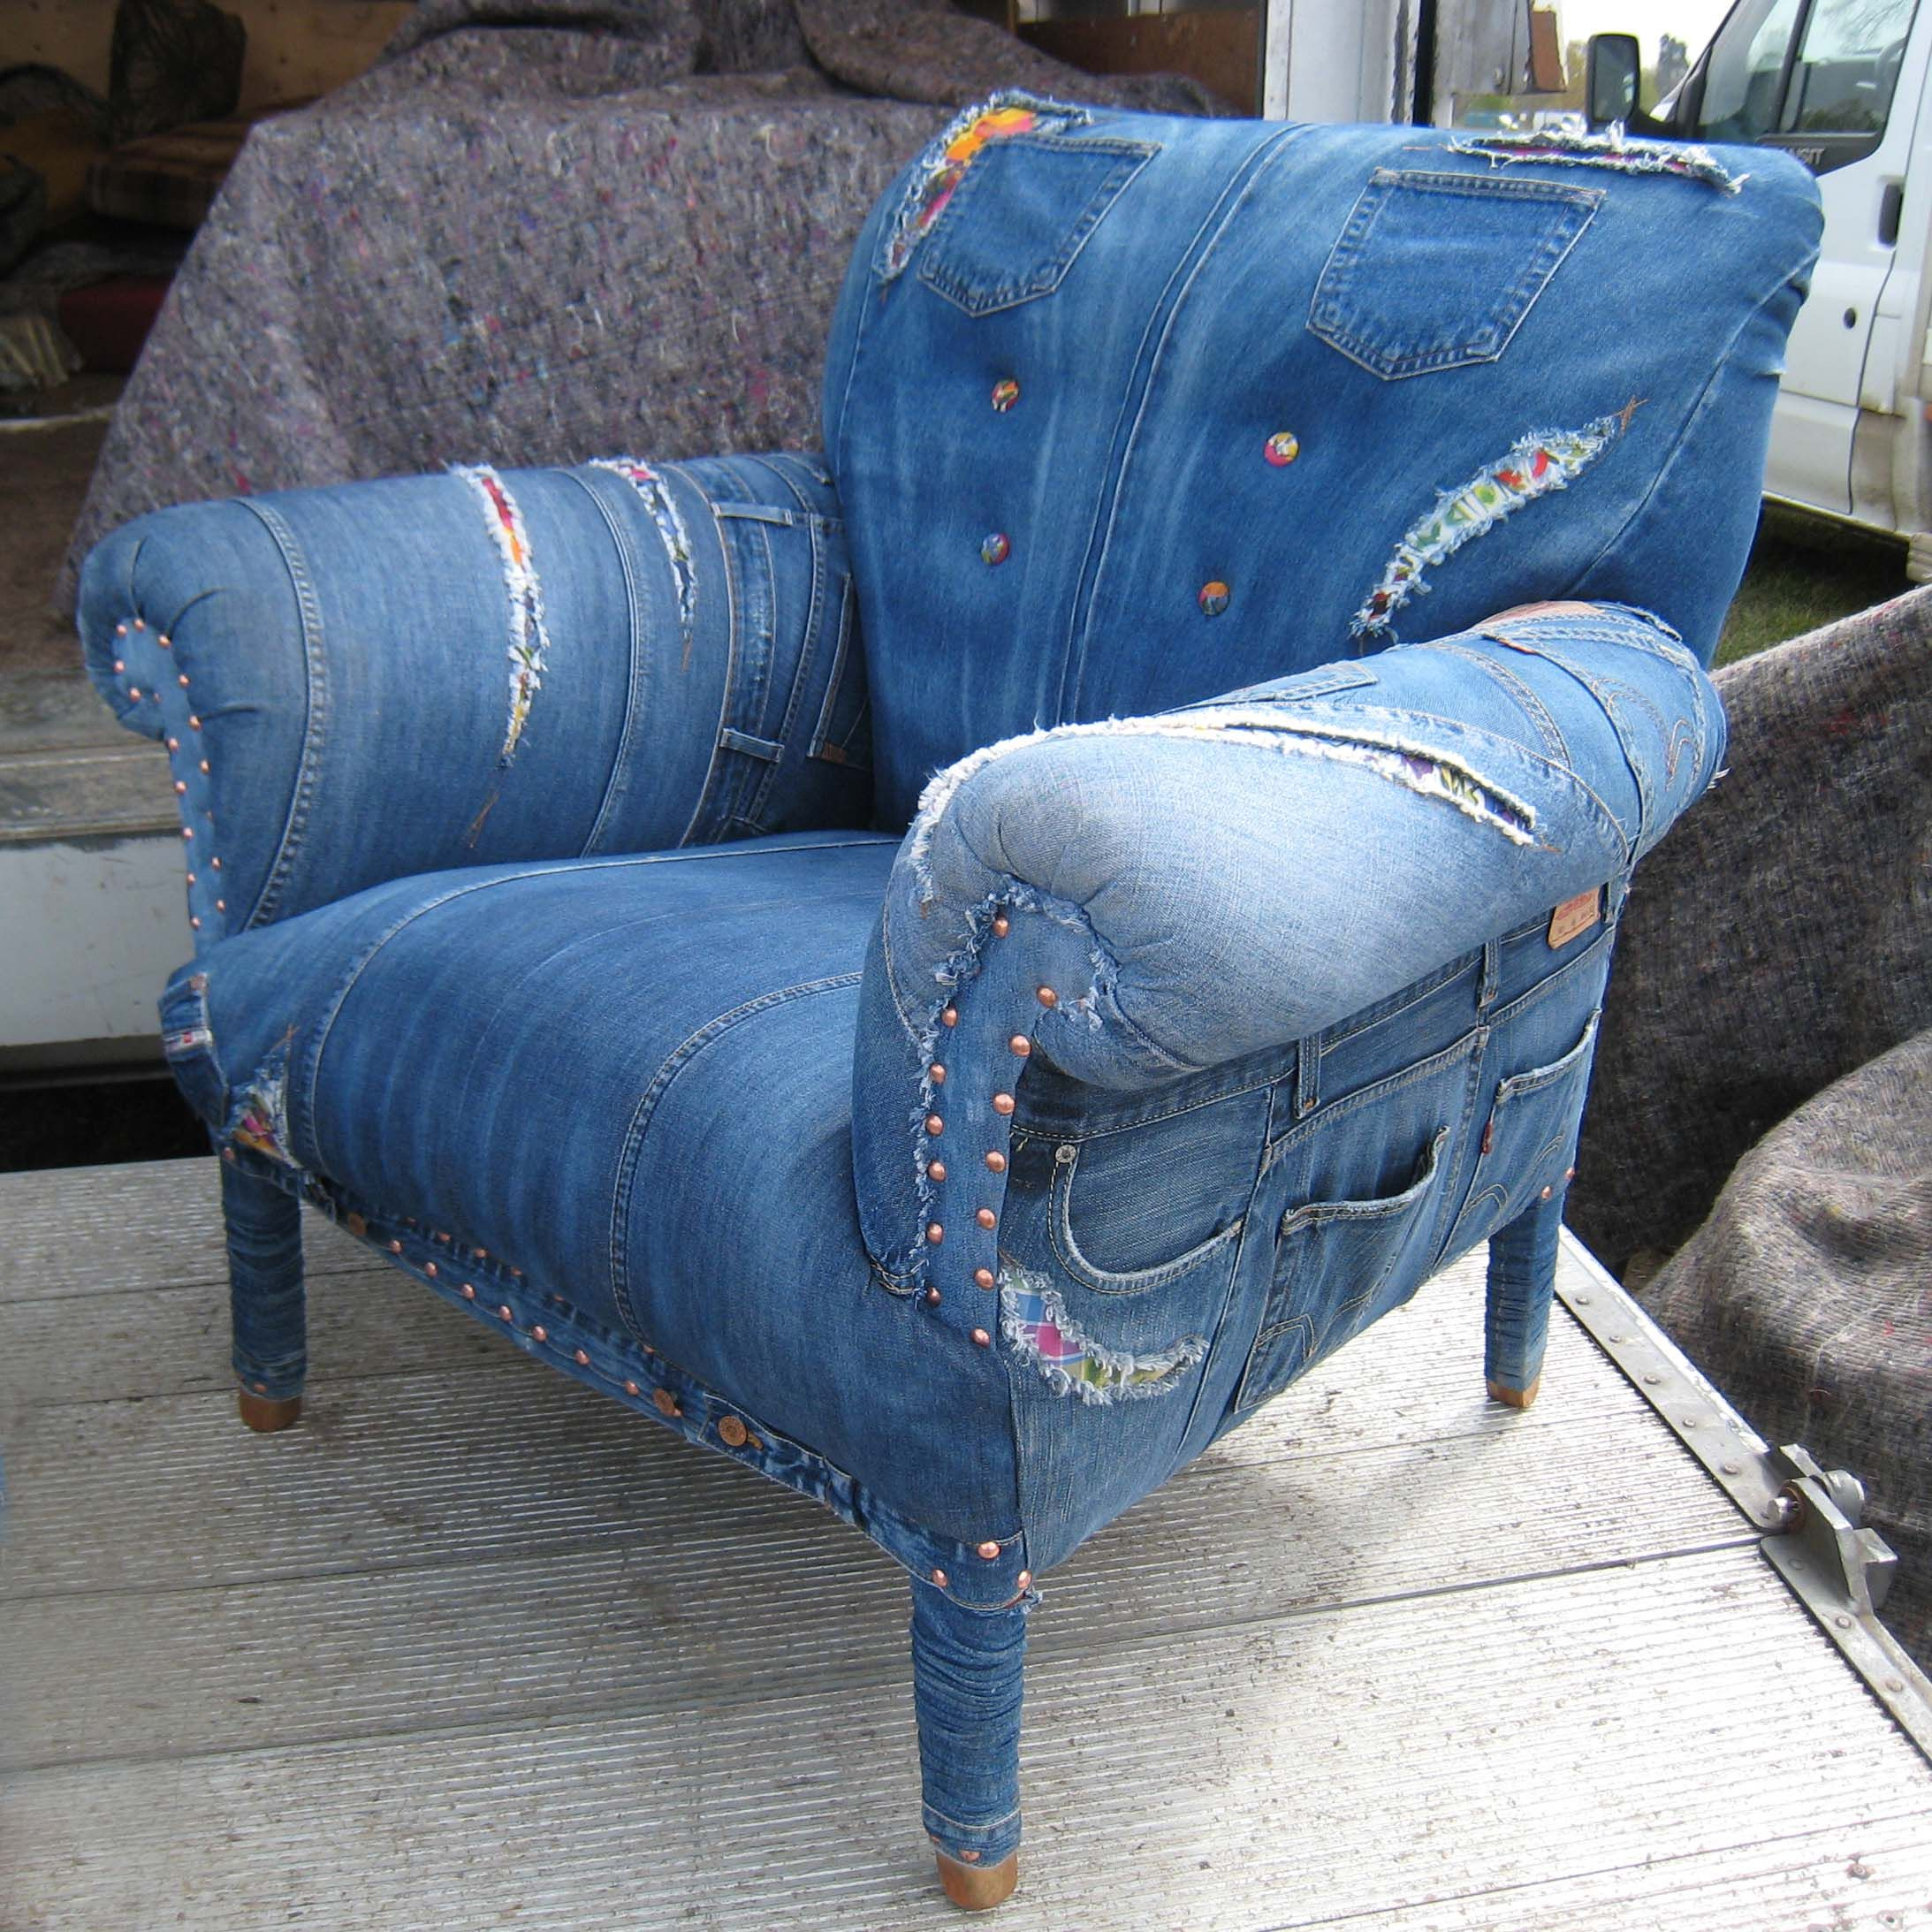 Denim Chairs Blue Jean Furniture Love This Chair Upholstered With